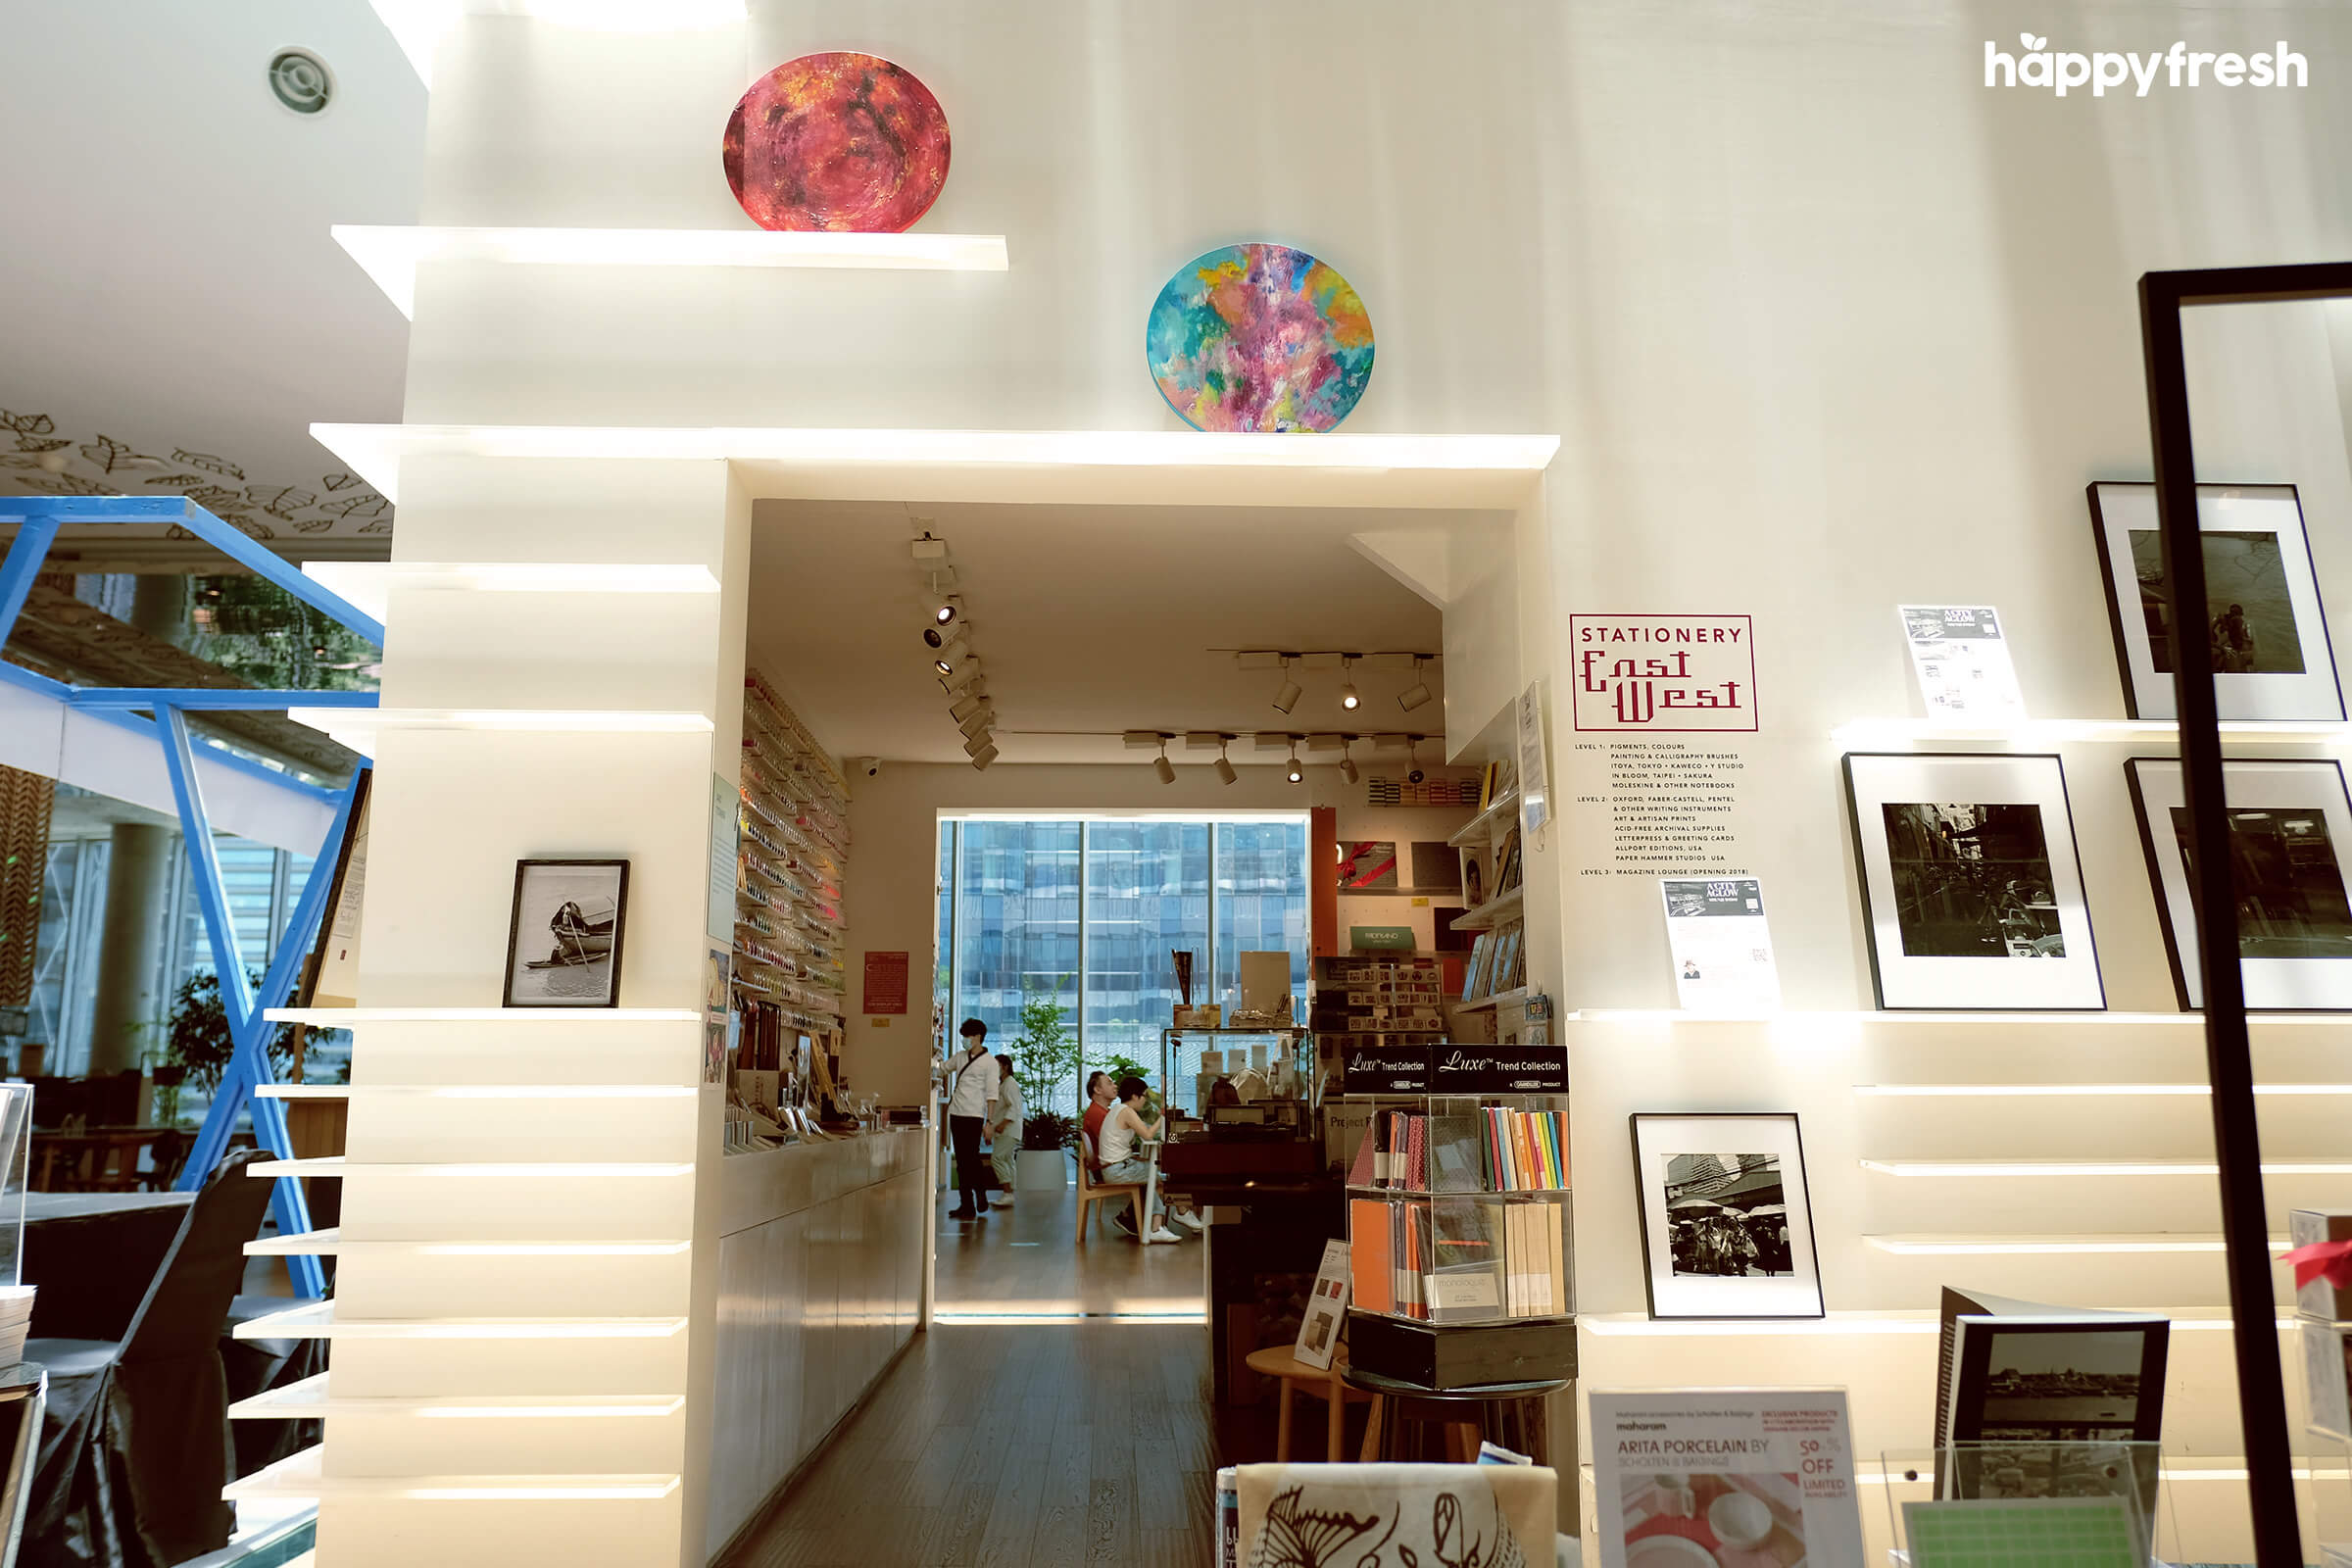 HappyFresh_Review_5_Cafes_Bookstores_In_Bangkok_Open_House_Art_Tower